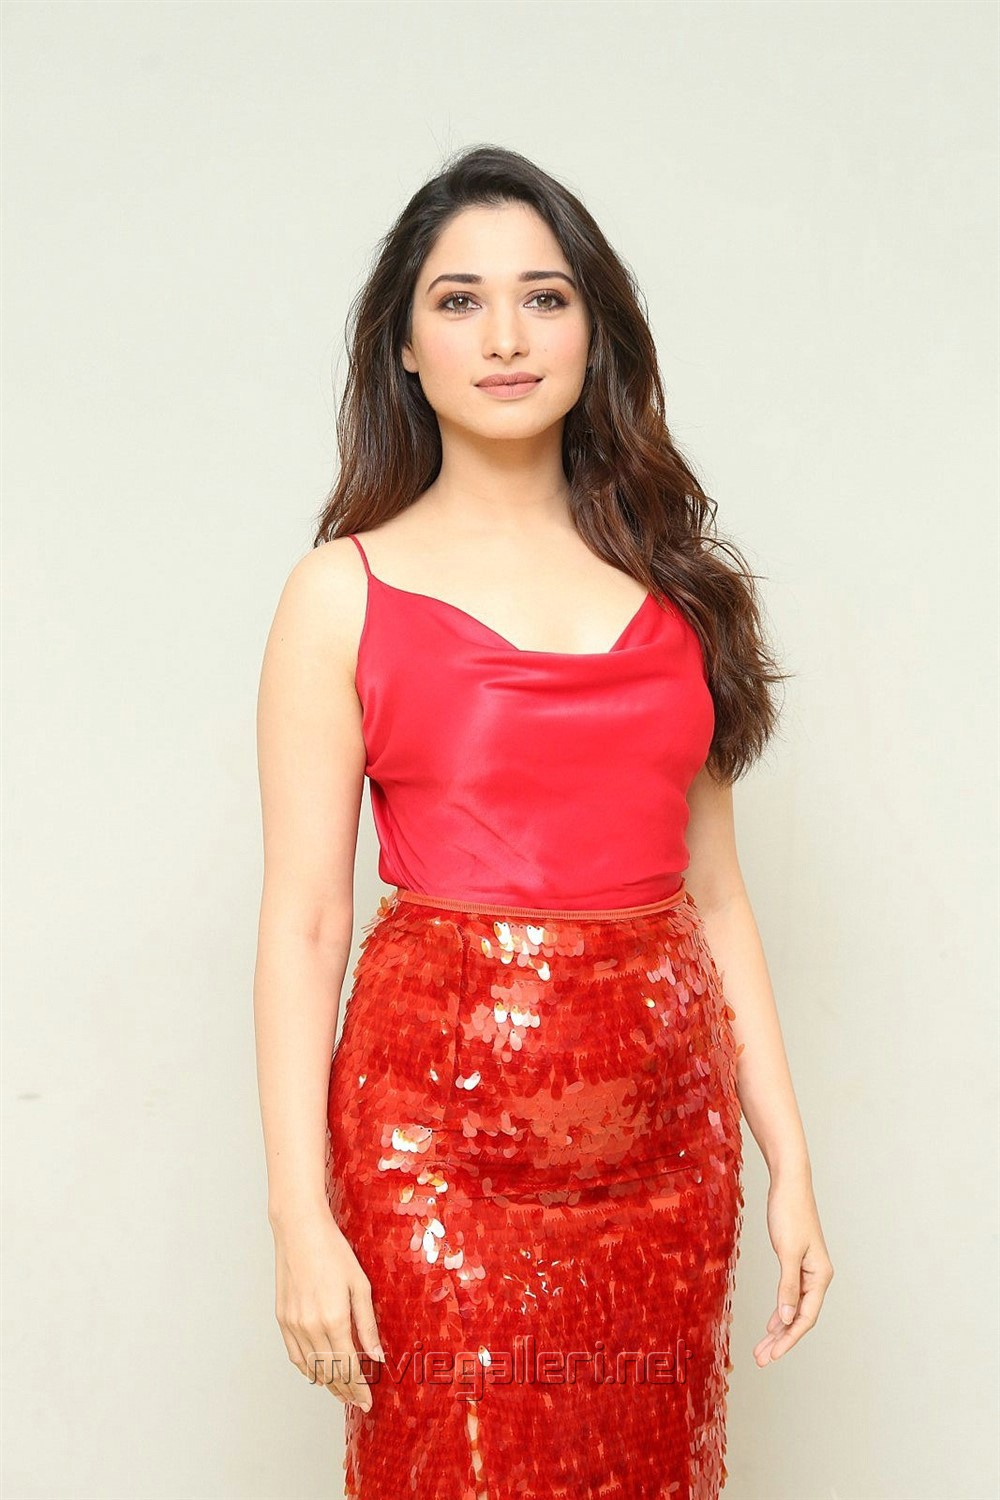 Next Enti Movie Actress Tamannaah Red Dress Photos